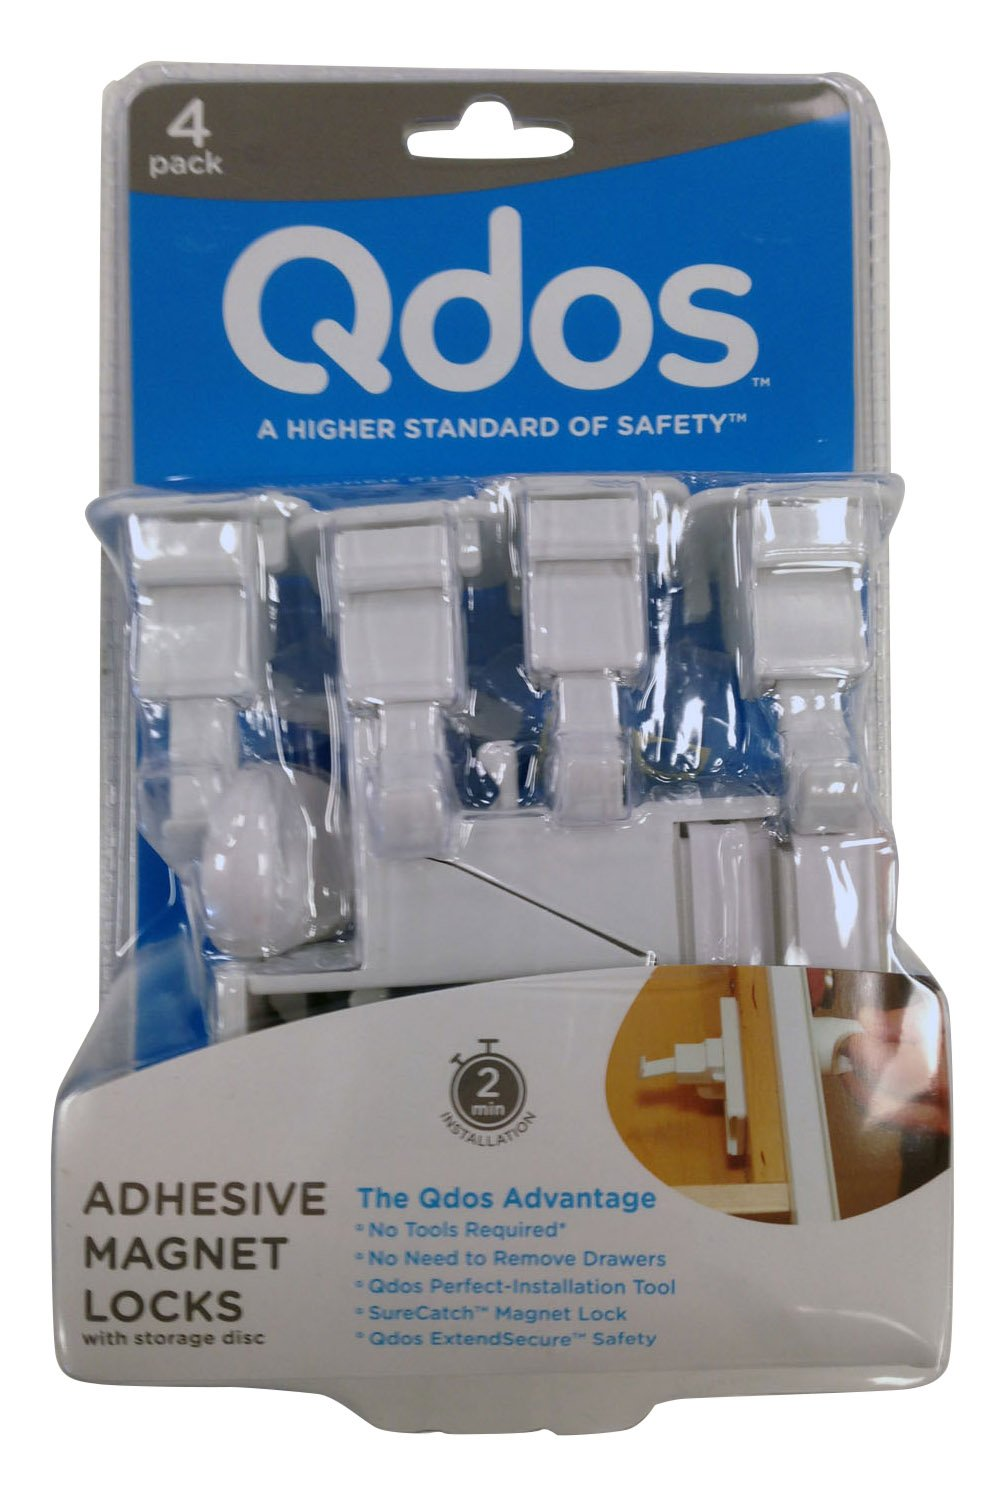 QDOS SureCatch Adhesive Magnetic Cabinet Lock | 4 Locks + 1 Key | White - Perfect Installation the FIRST time - No Removing Drawers! No Drilling! No Tools Required! Only for Standard Framed Cabinets by Qdos Safety